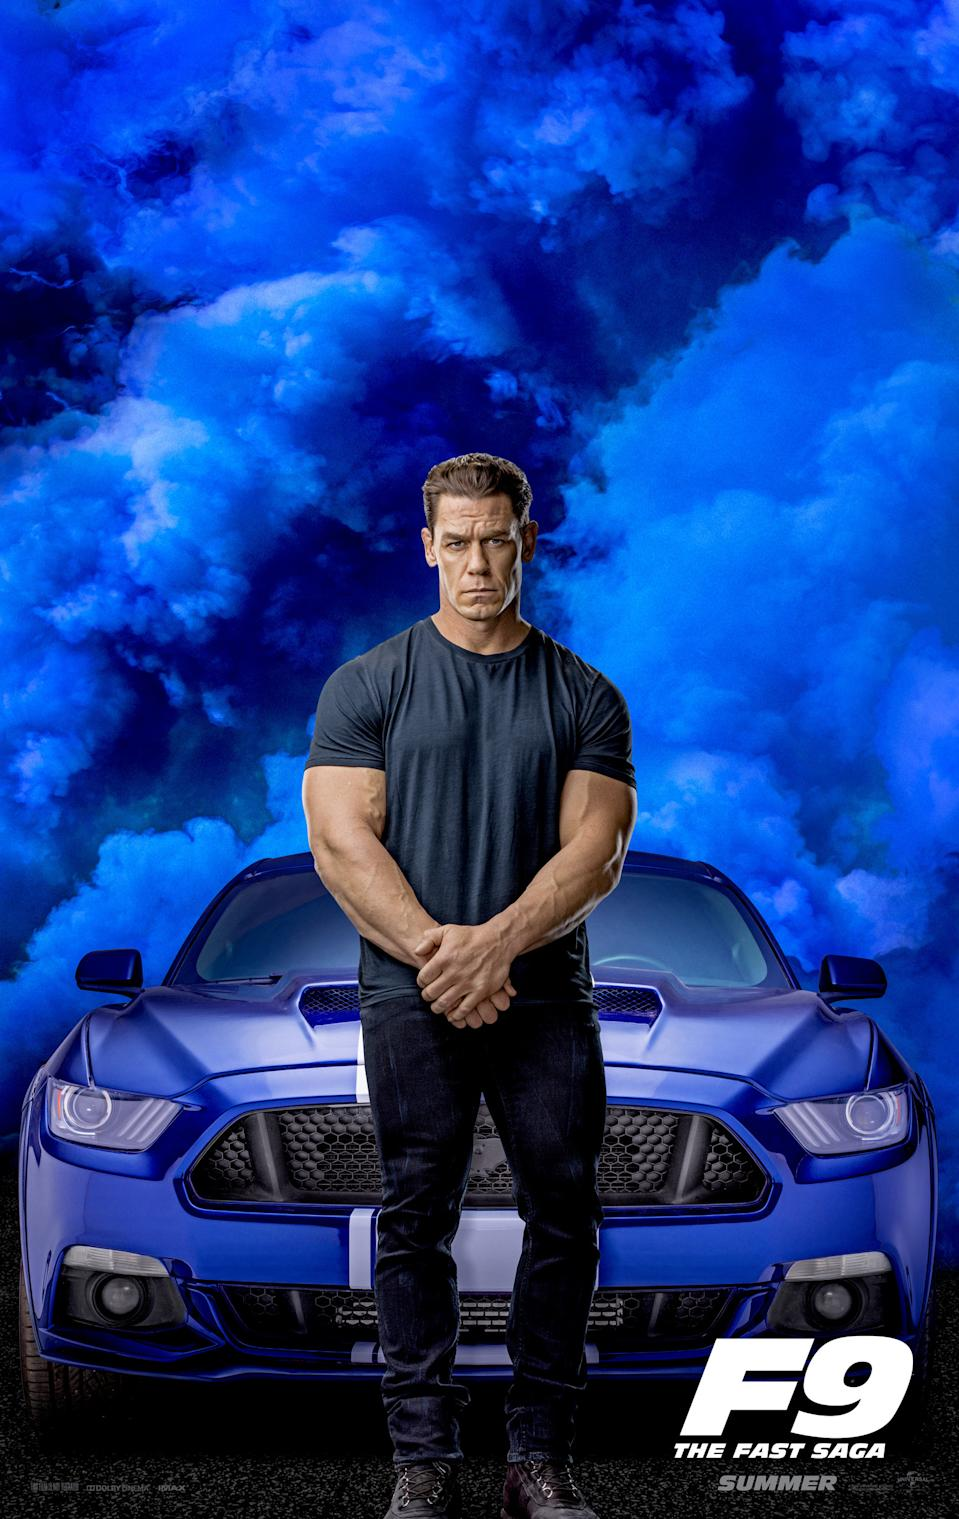 John Cena gets a character poster for 'Fast & Furious 9'. (Credit: Universal)